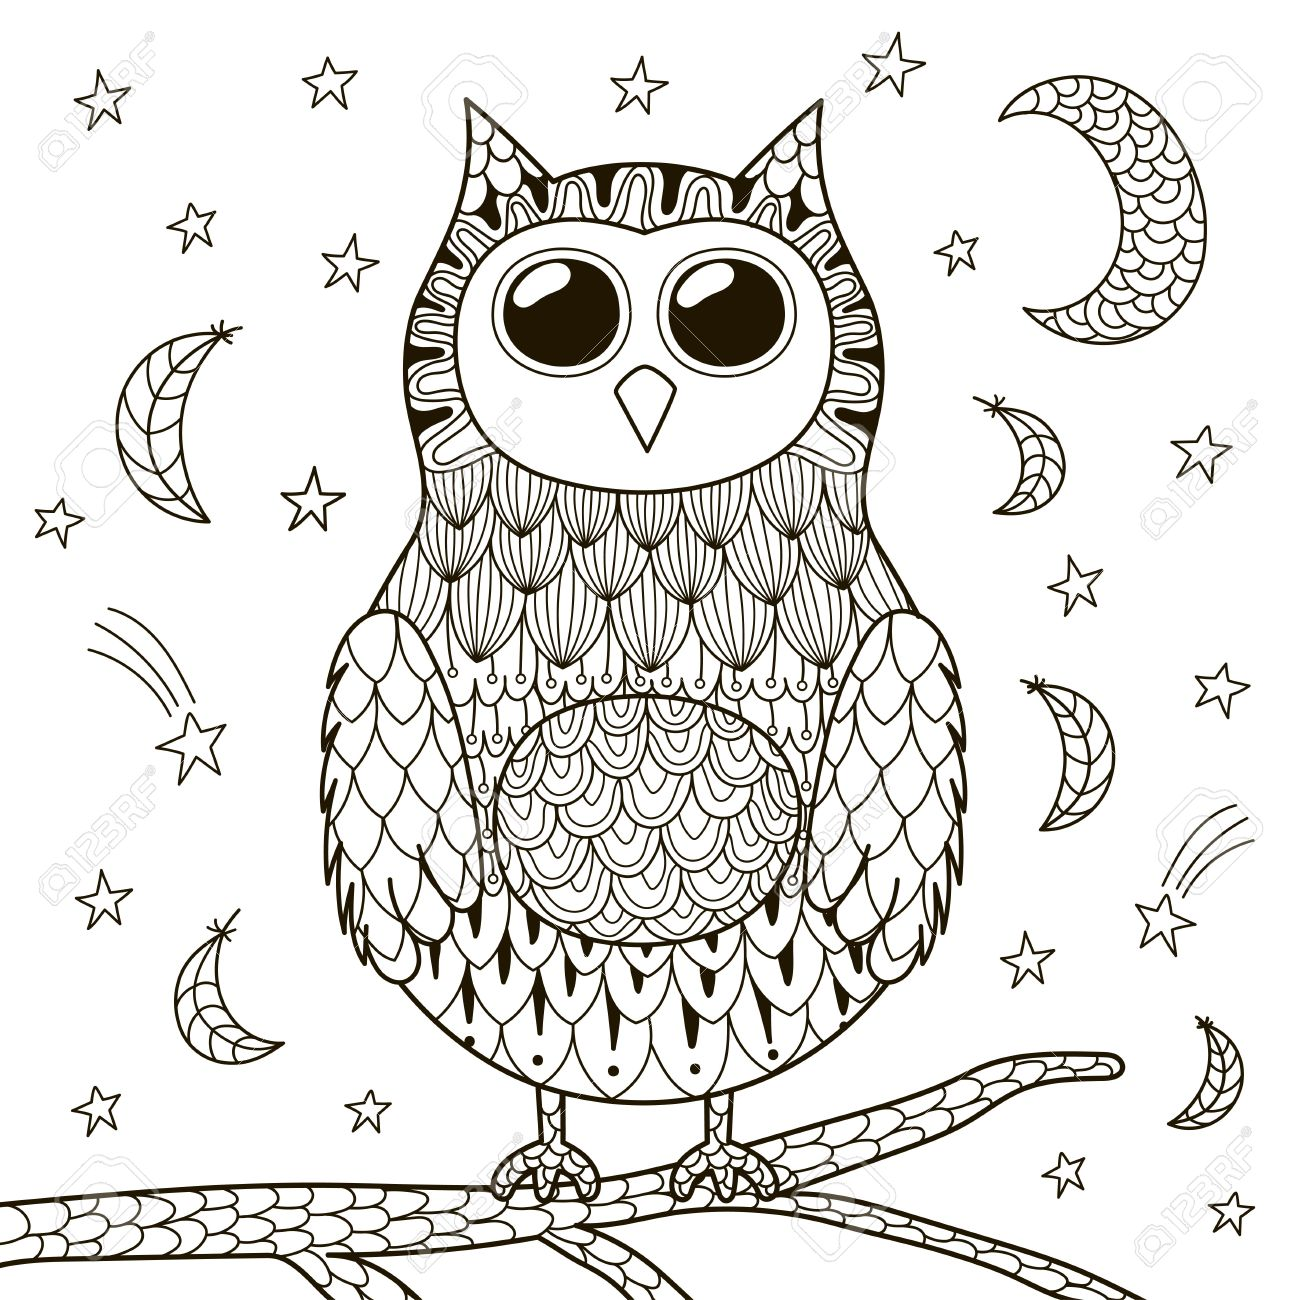 Cute Owl At Night For Coloring Book Black And White Background Stock Vector